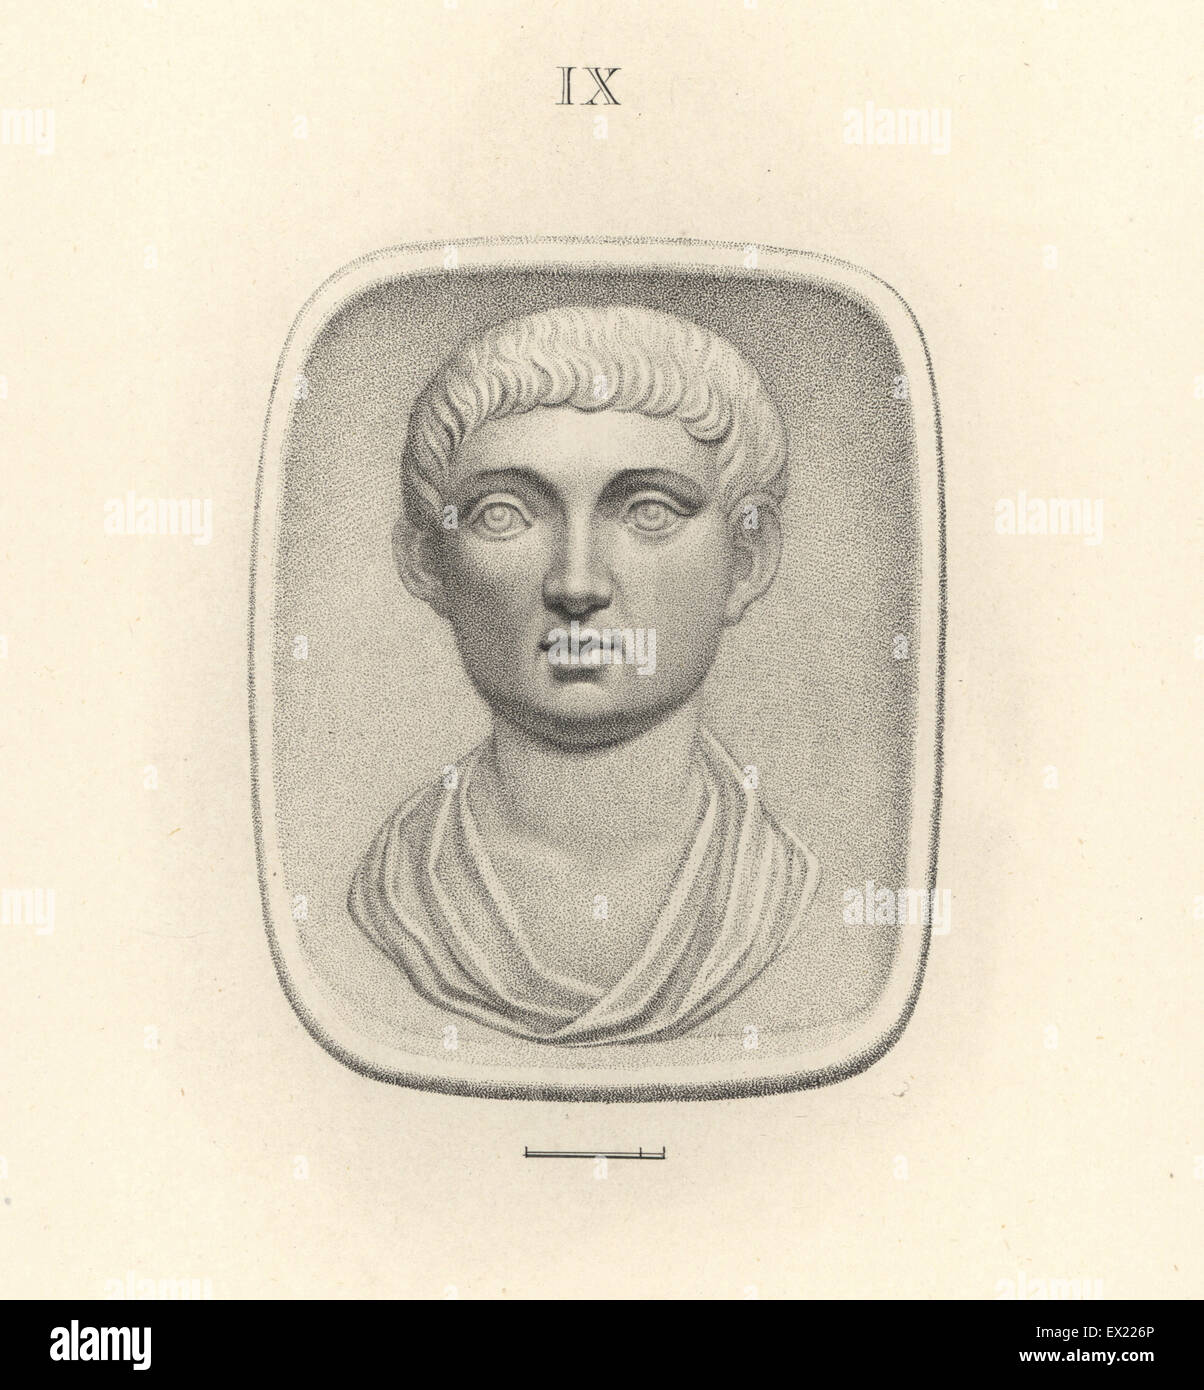 Head of unknown man, Ancient Greece or Rome. Copperplate engraving by Francesco Bartolozzi from 108 Plates of Antique - Stock Image